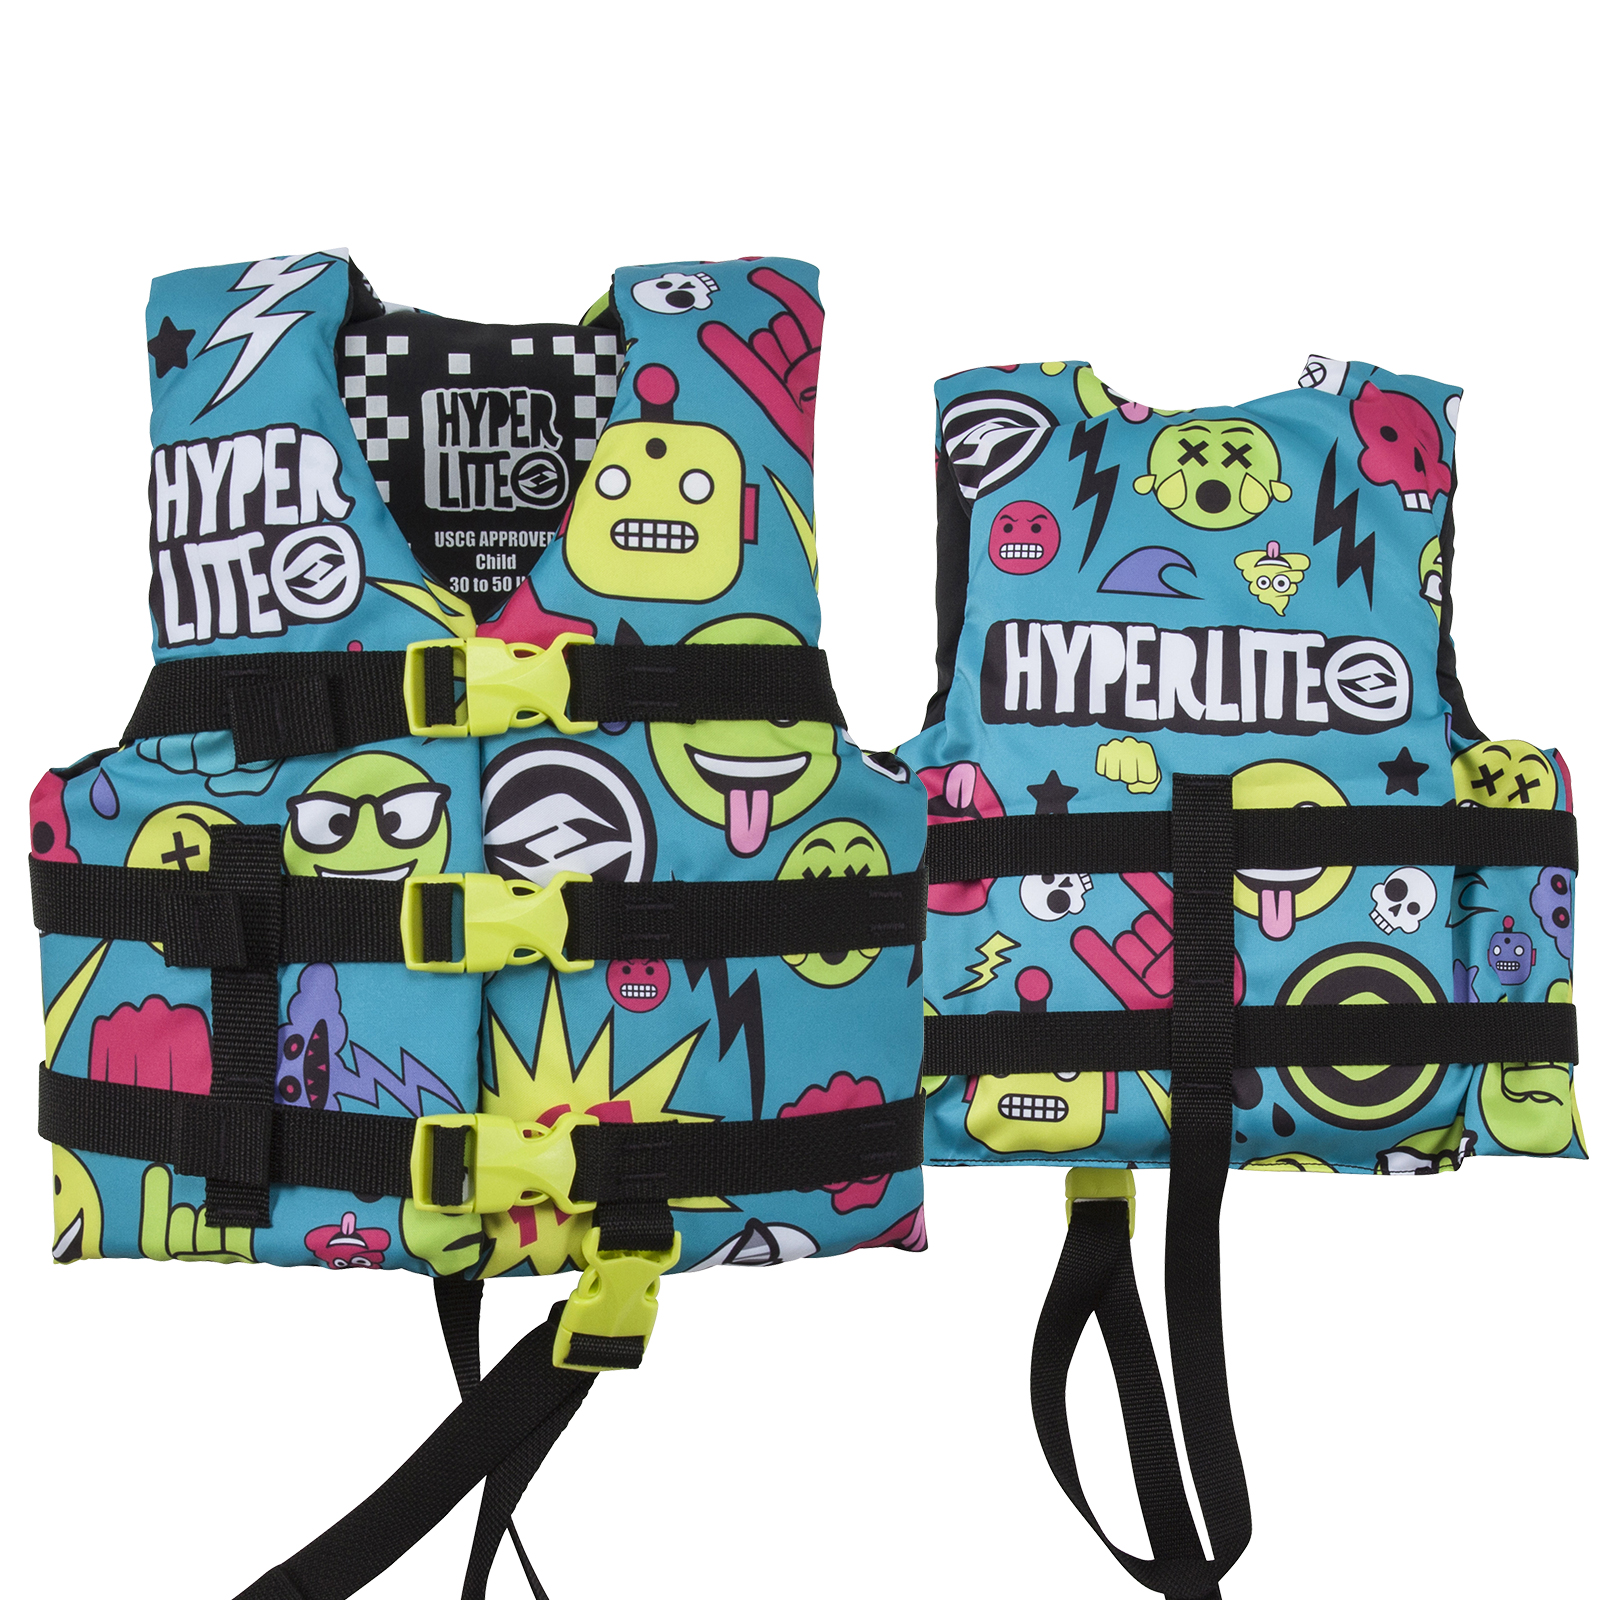 CHILD UNITE VEST 13-23KG HYPERLITE 2018